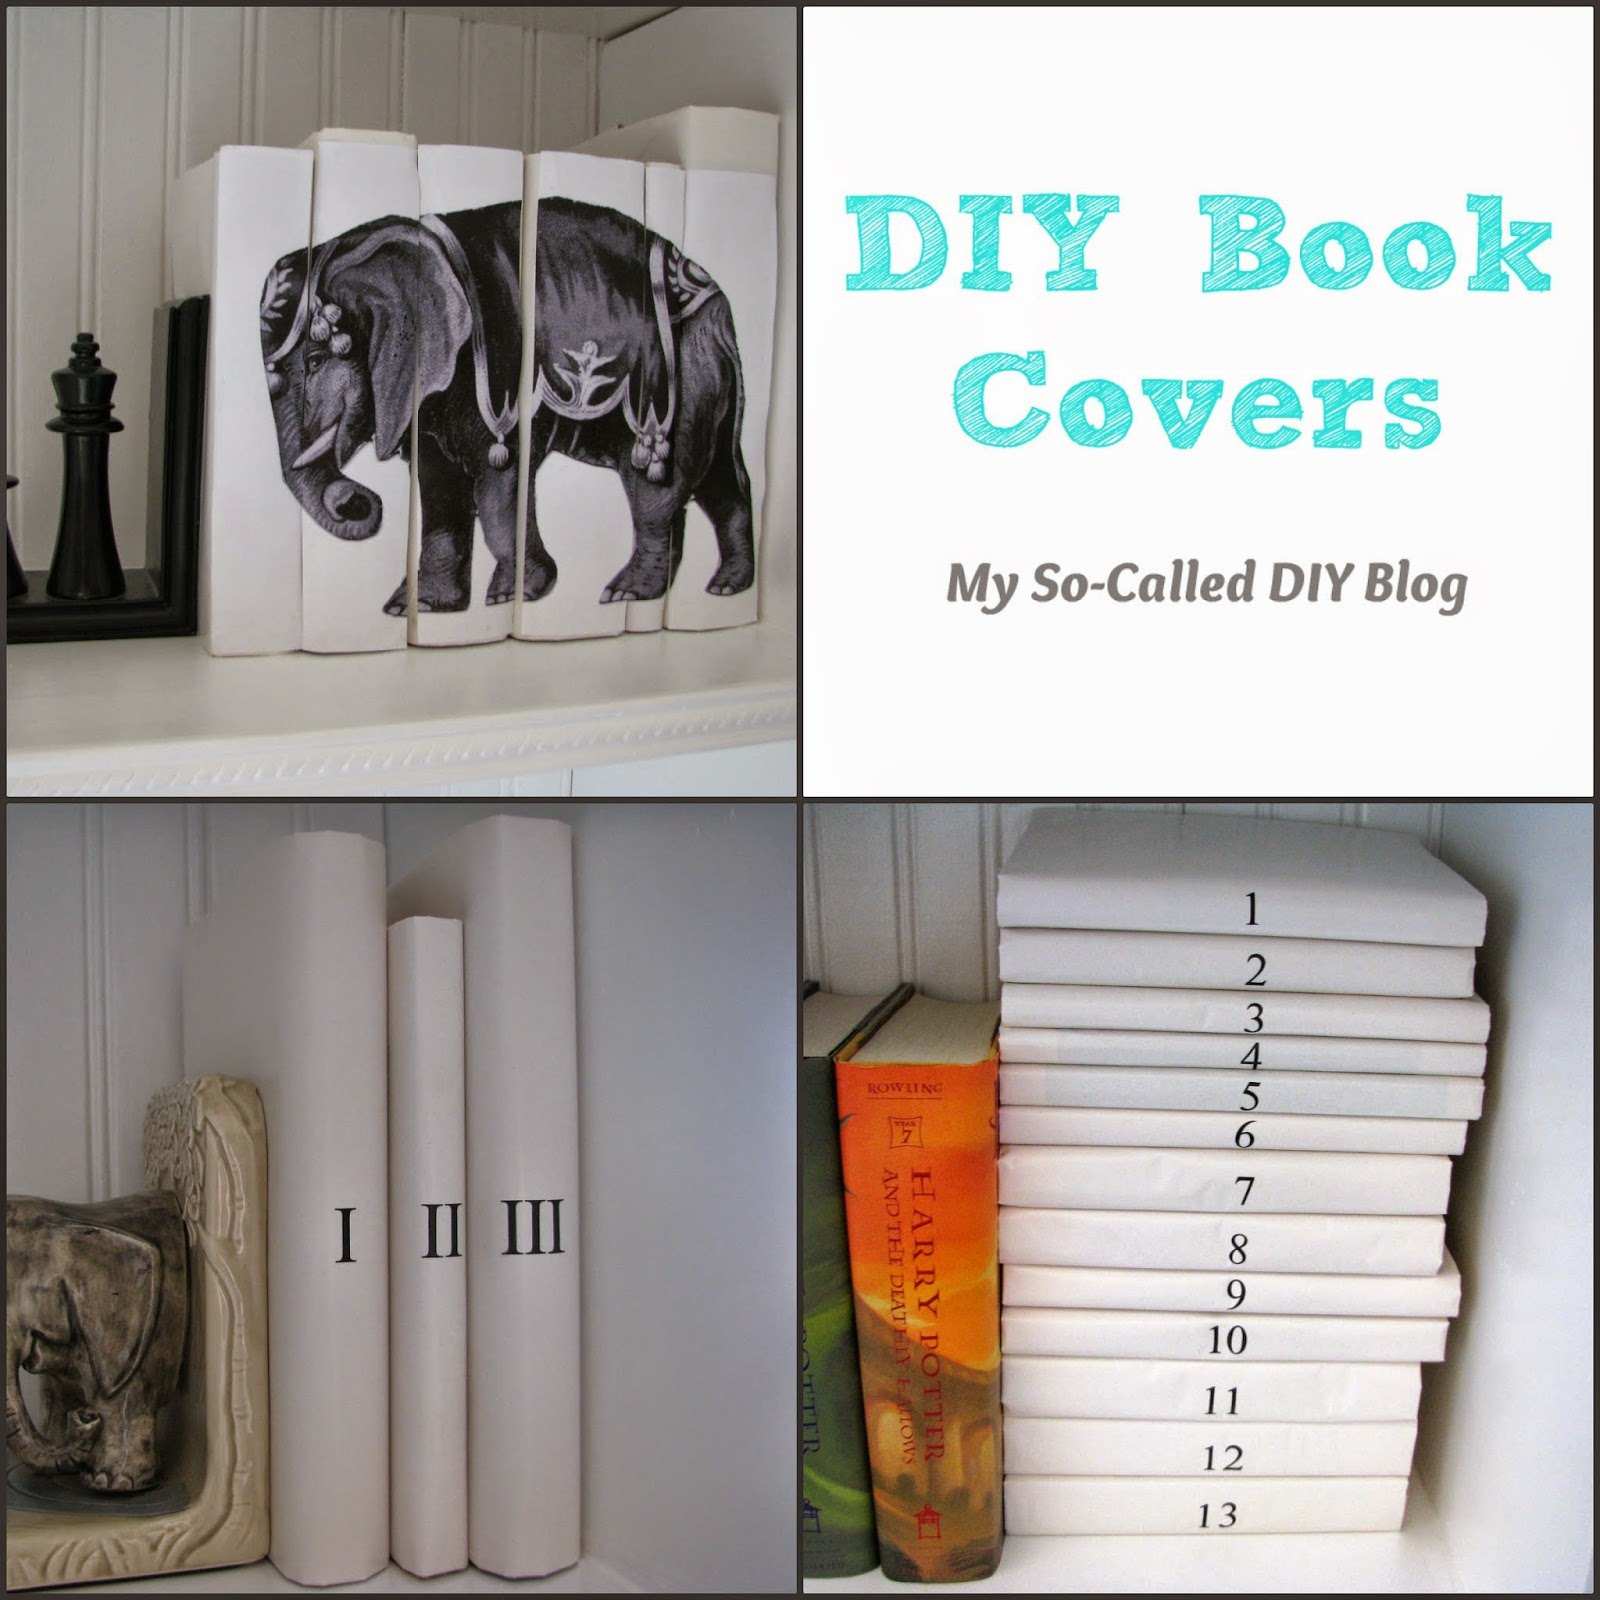 Diy Book Cover For Textbook : My so called diy book covers